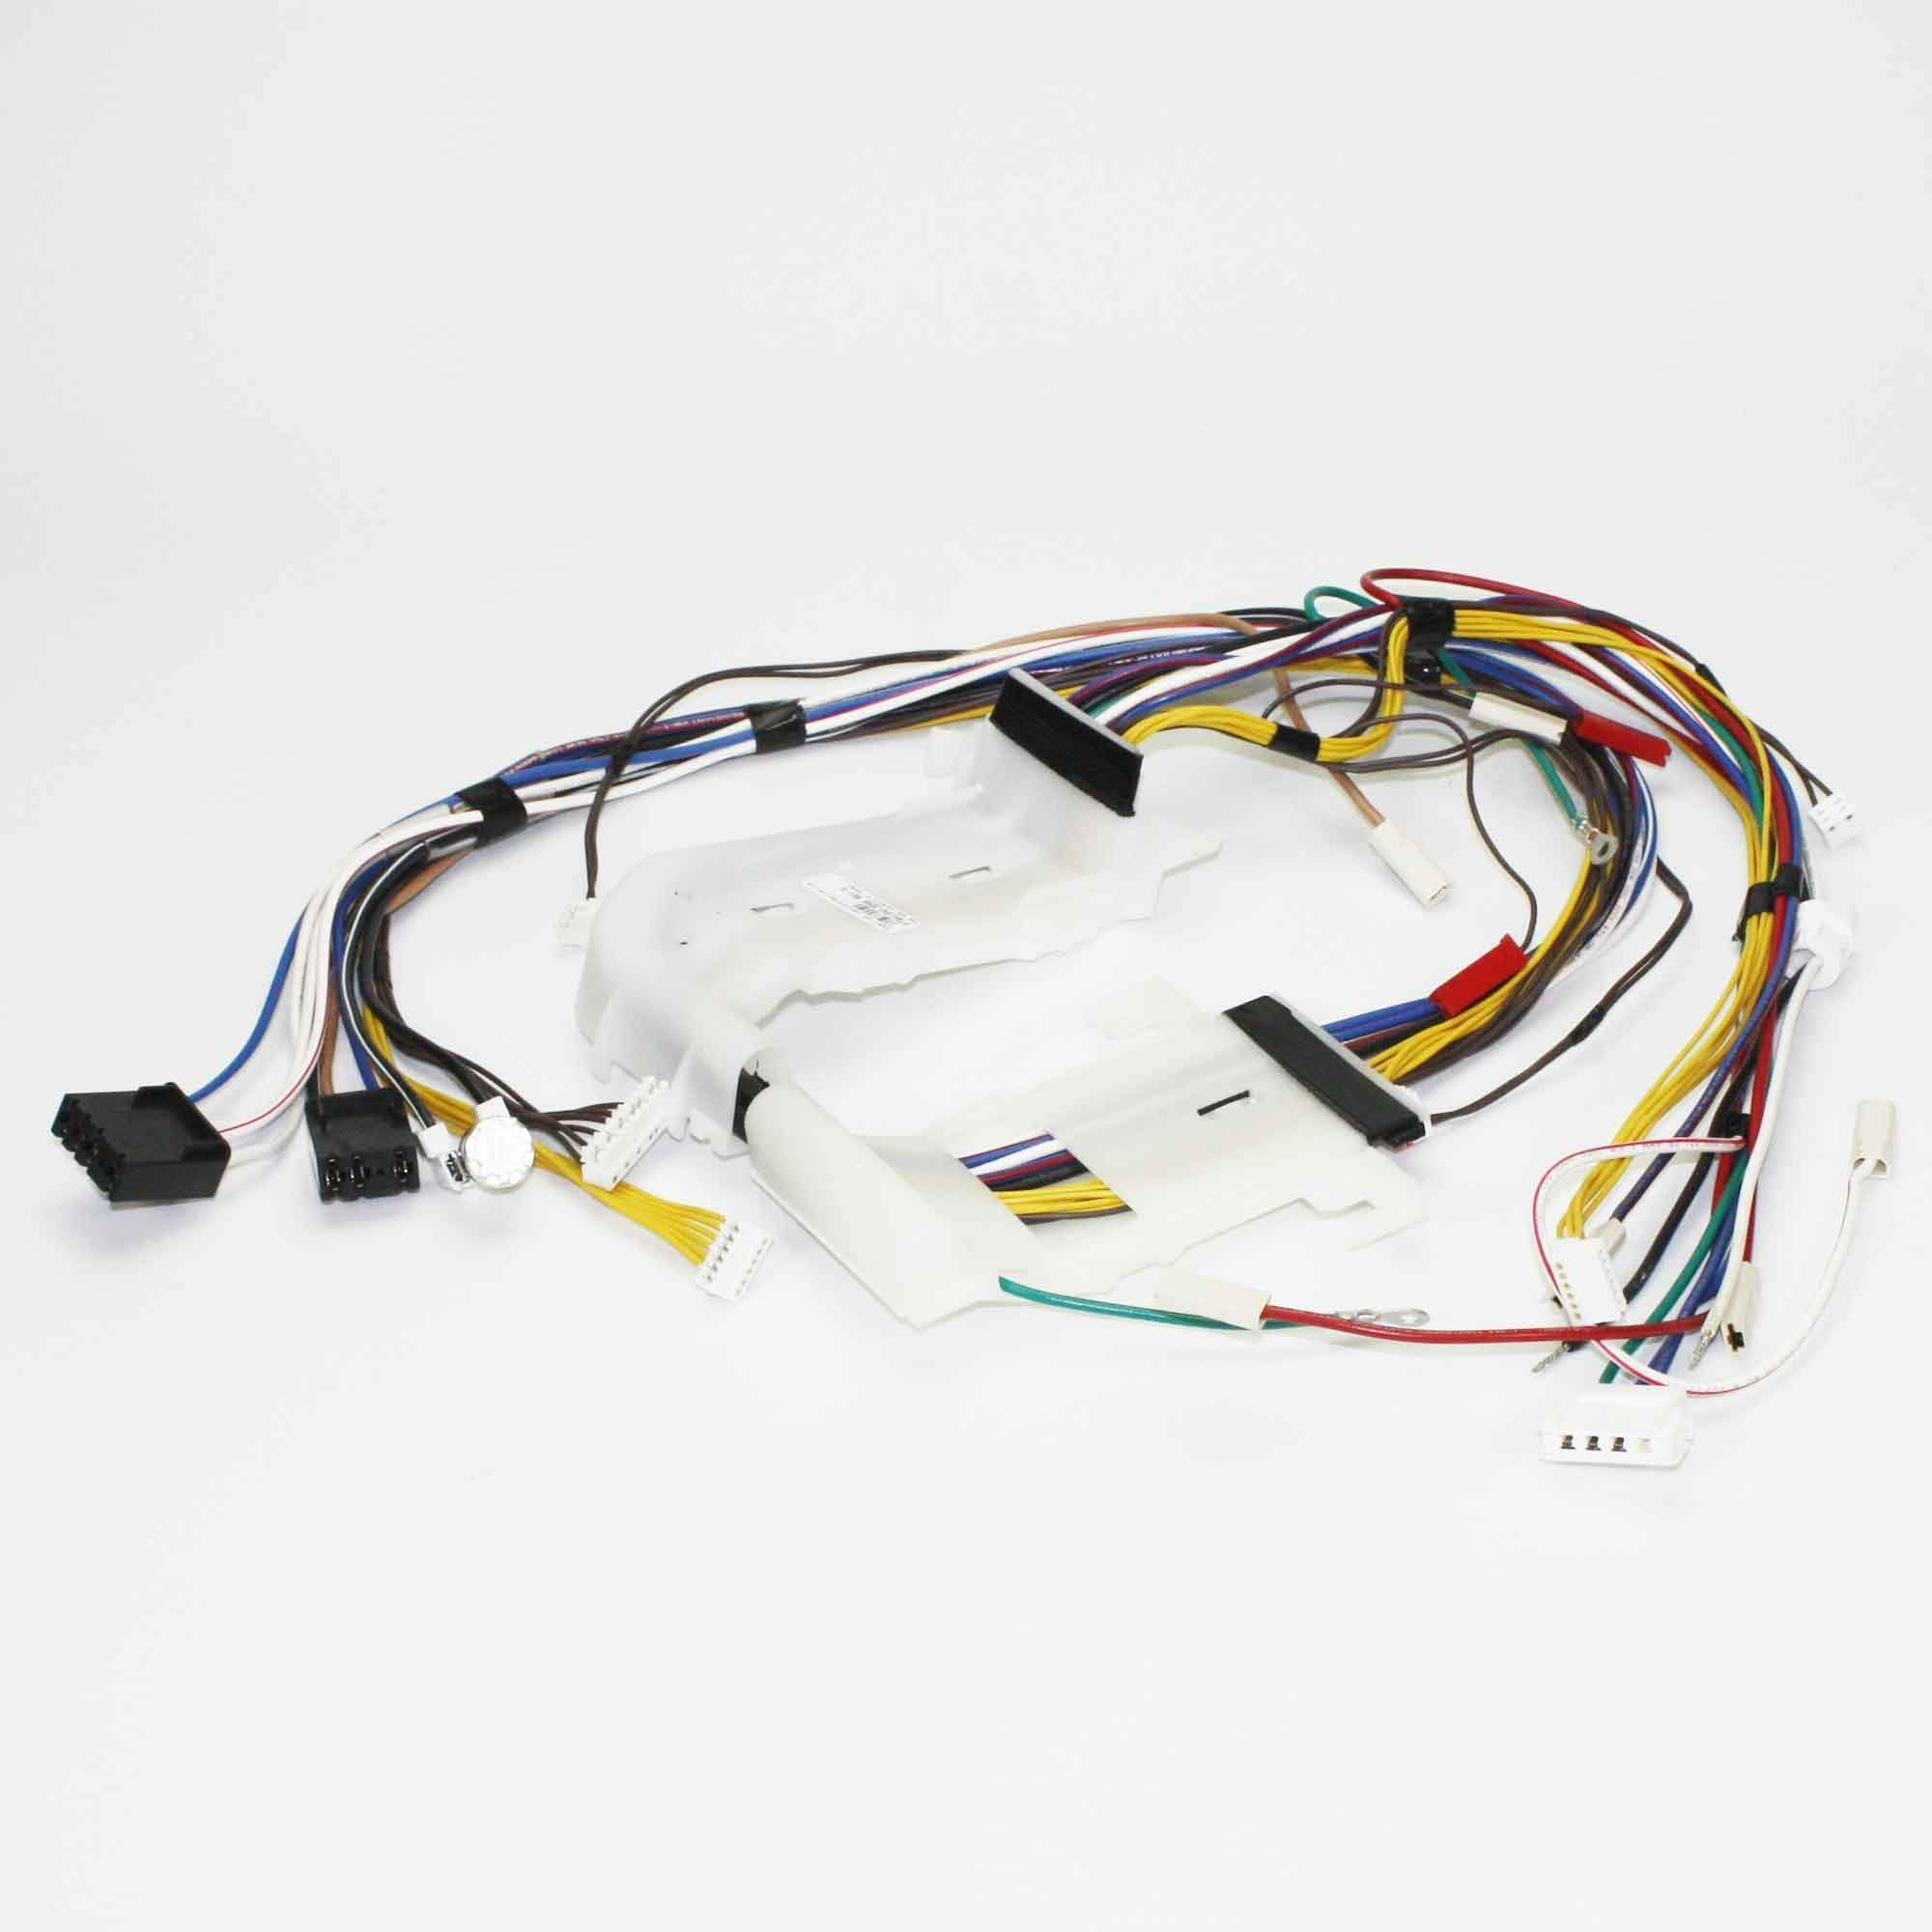 WPW10413098 For Whirlpool Dishwasher Wire Harness   Whirlpool ...